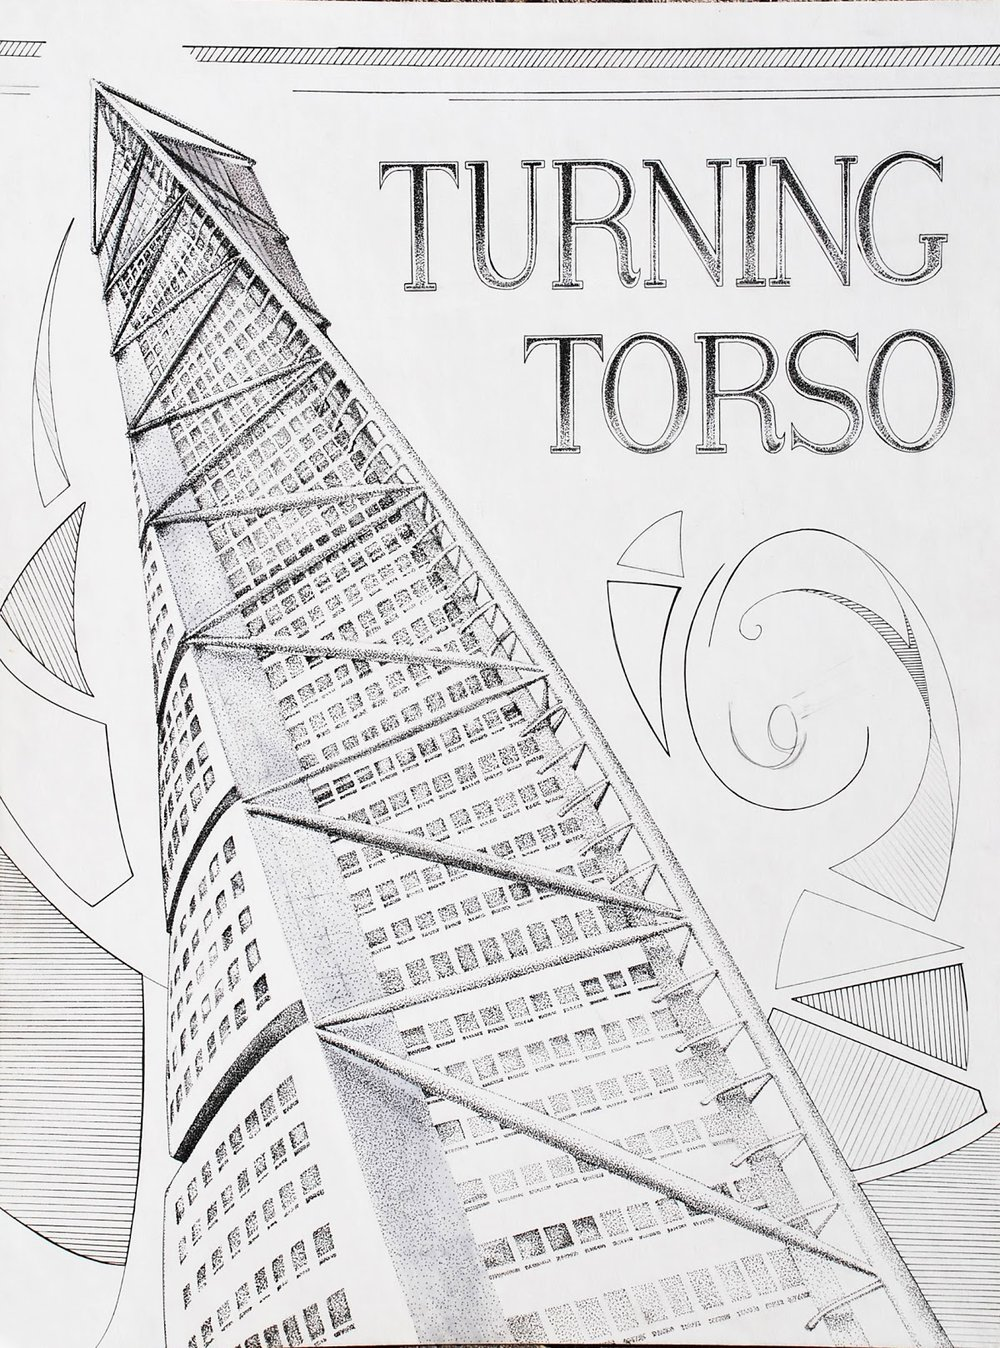 Illsutration of the Turning Torso. Pen and Ink.